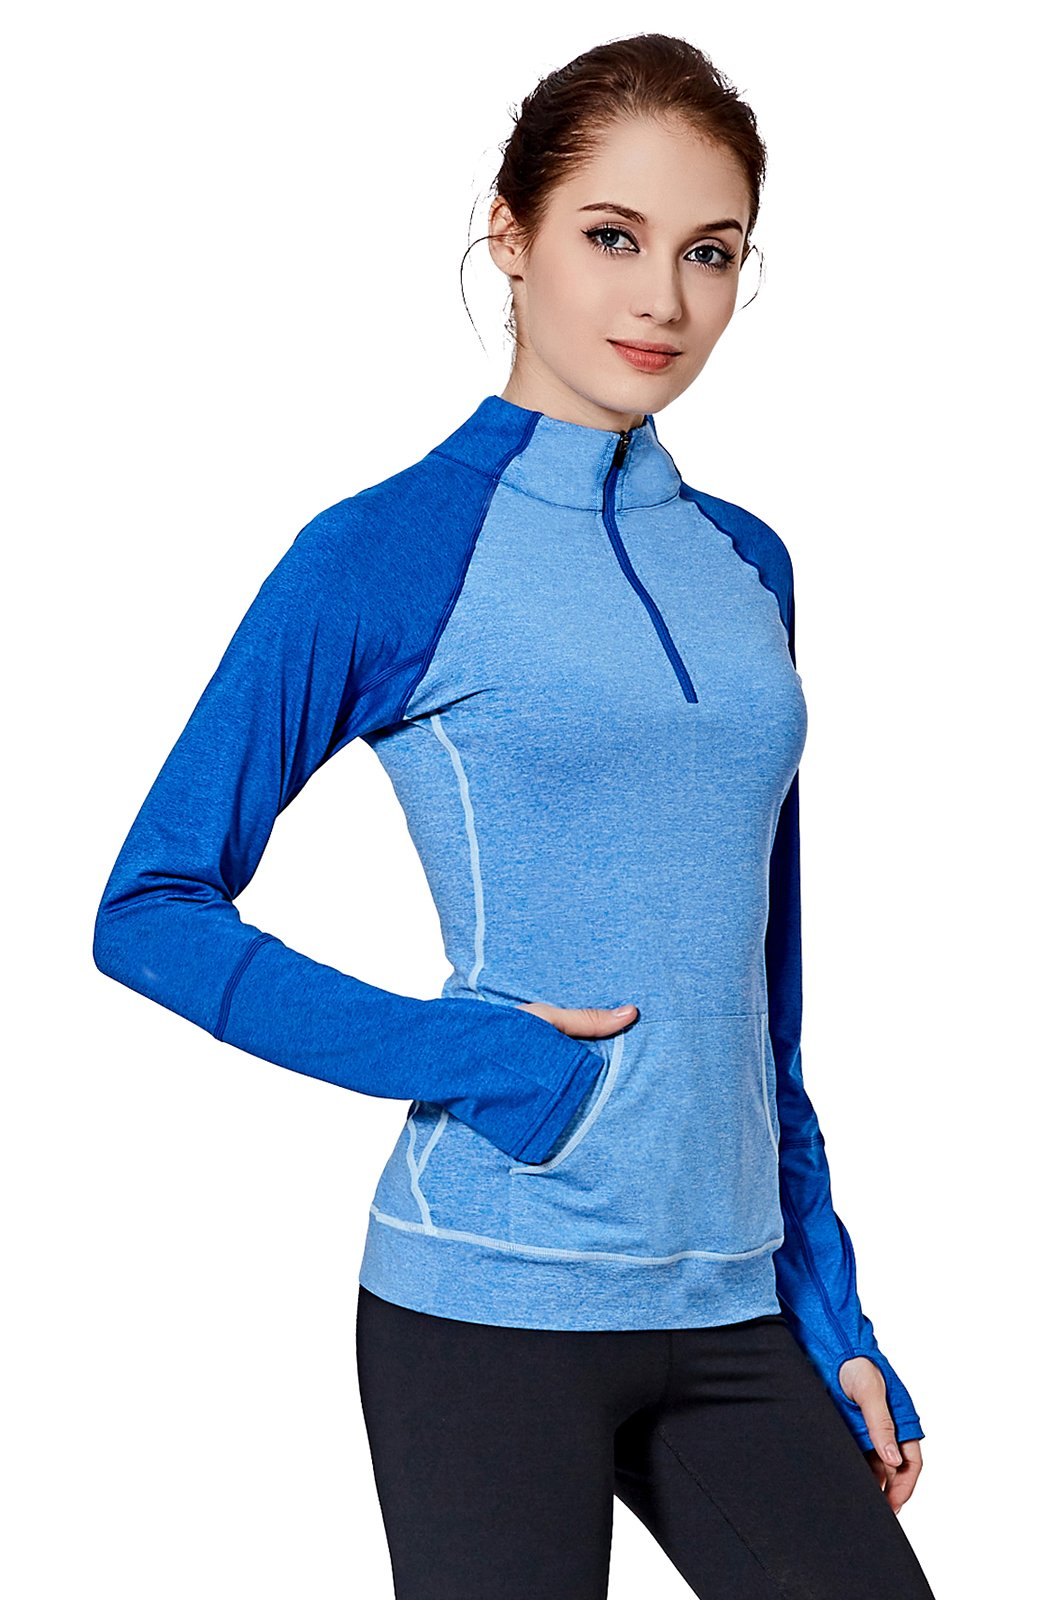 Cityoung Women Yoga Long Sleeves Half Zip Sweatshirt Girl Athletic Workout Running Jacket (M, Blue) by Cityoung